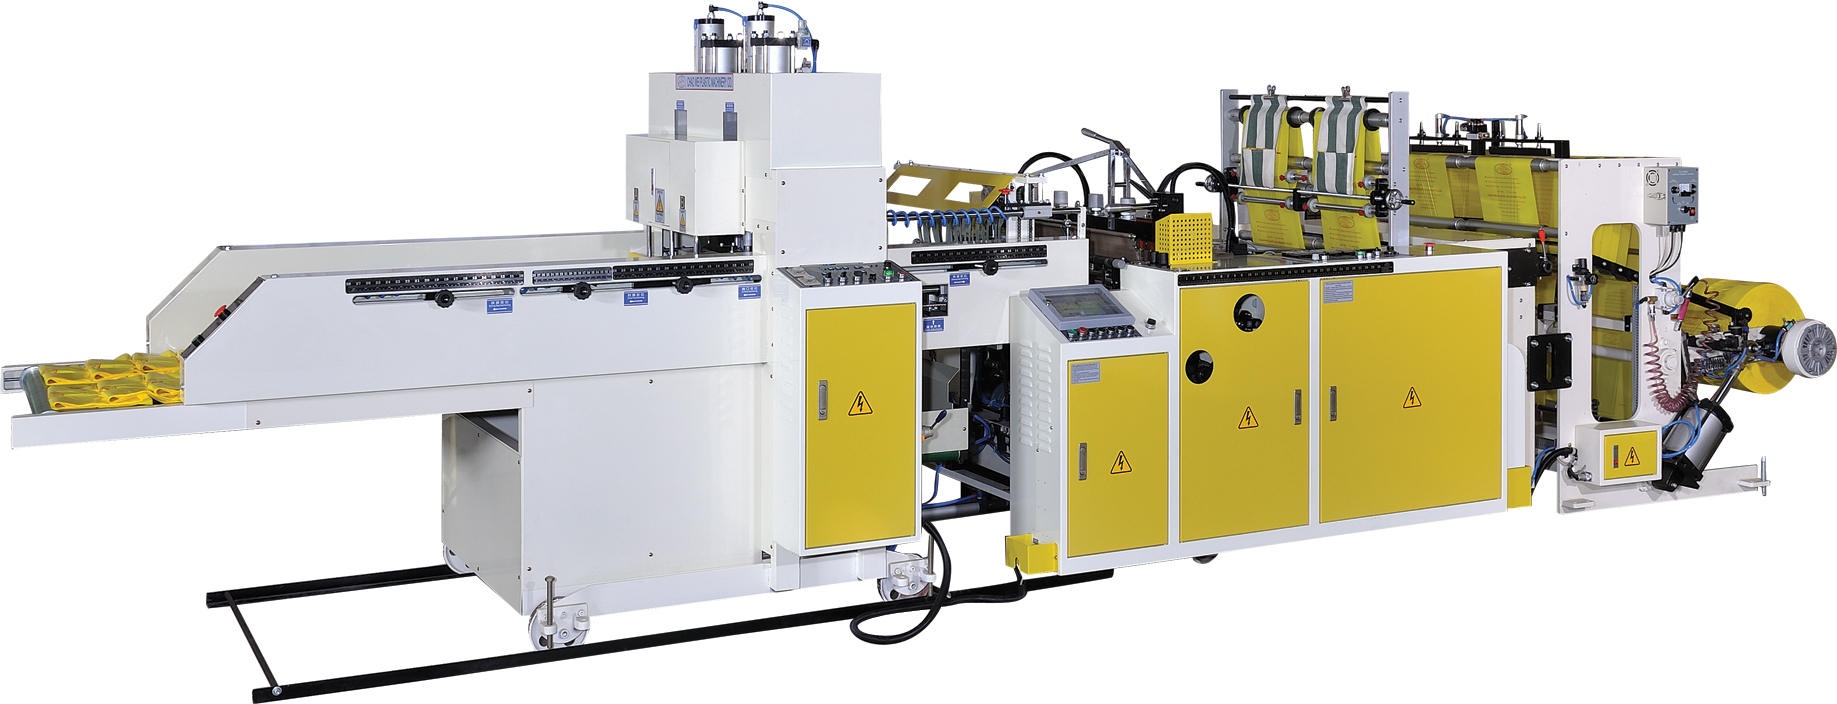 Super high speed fully automatic T-shirt bag making machine with 2 photocells & double servo motor control